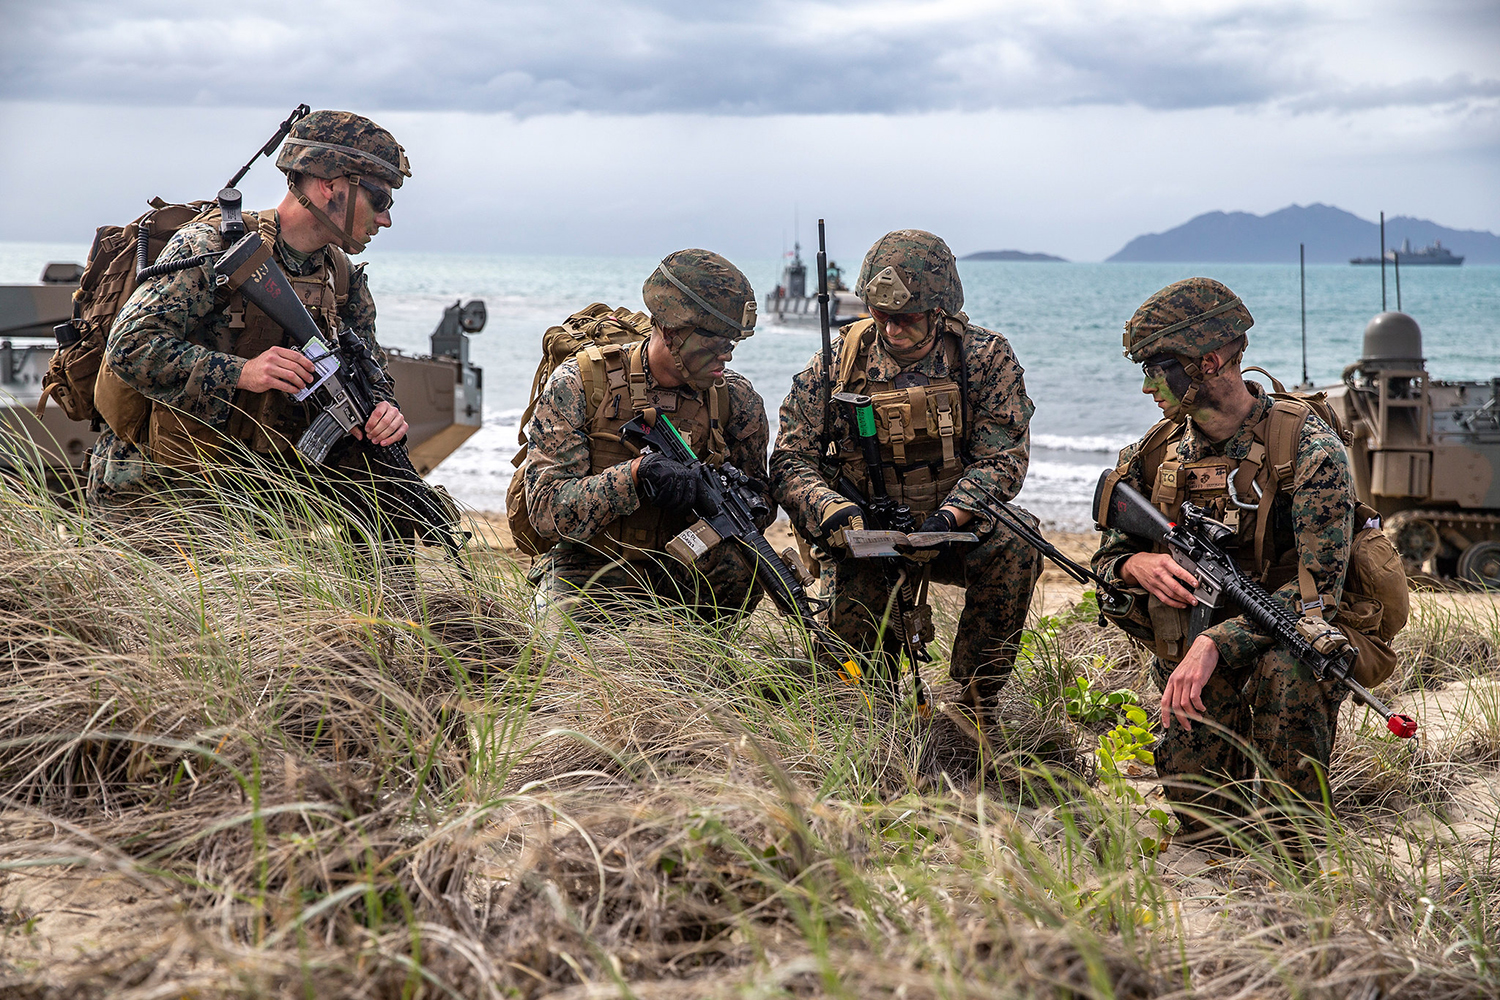 U.S. Marines assess a terrain map during a simulated amphibious assault of exercise Talisman Sabre 19 in Bowen, Australia, July 22, 2019. (Lance Cpl. Tanner D. Lambert/Marine Corps)